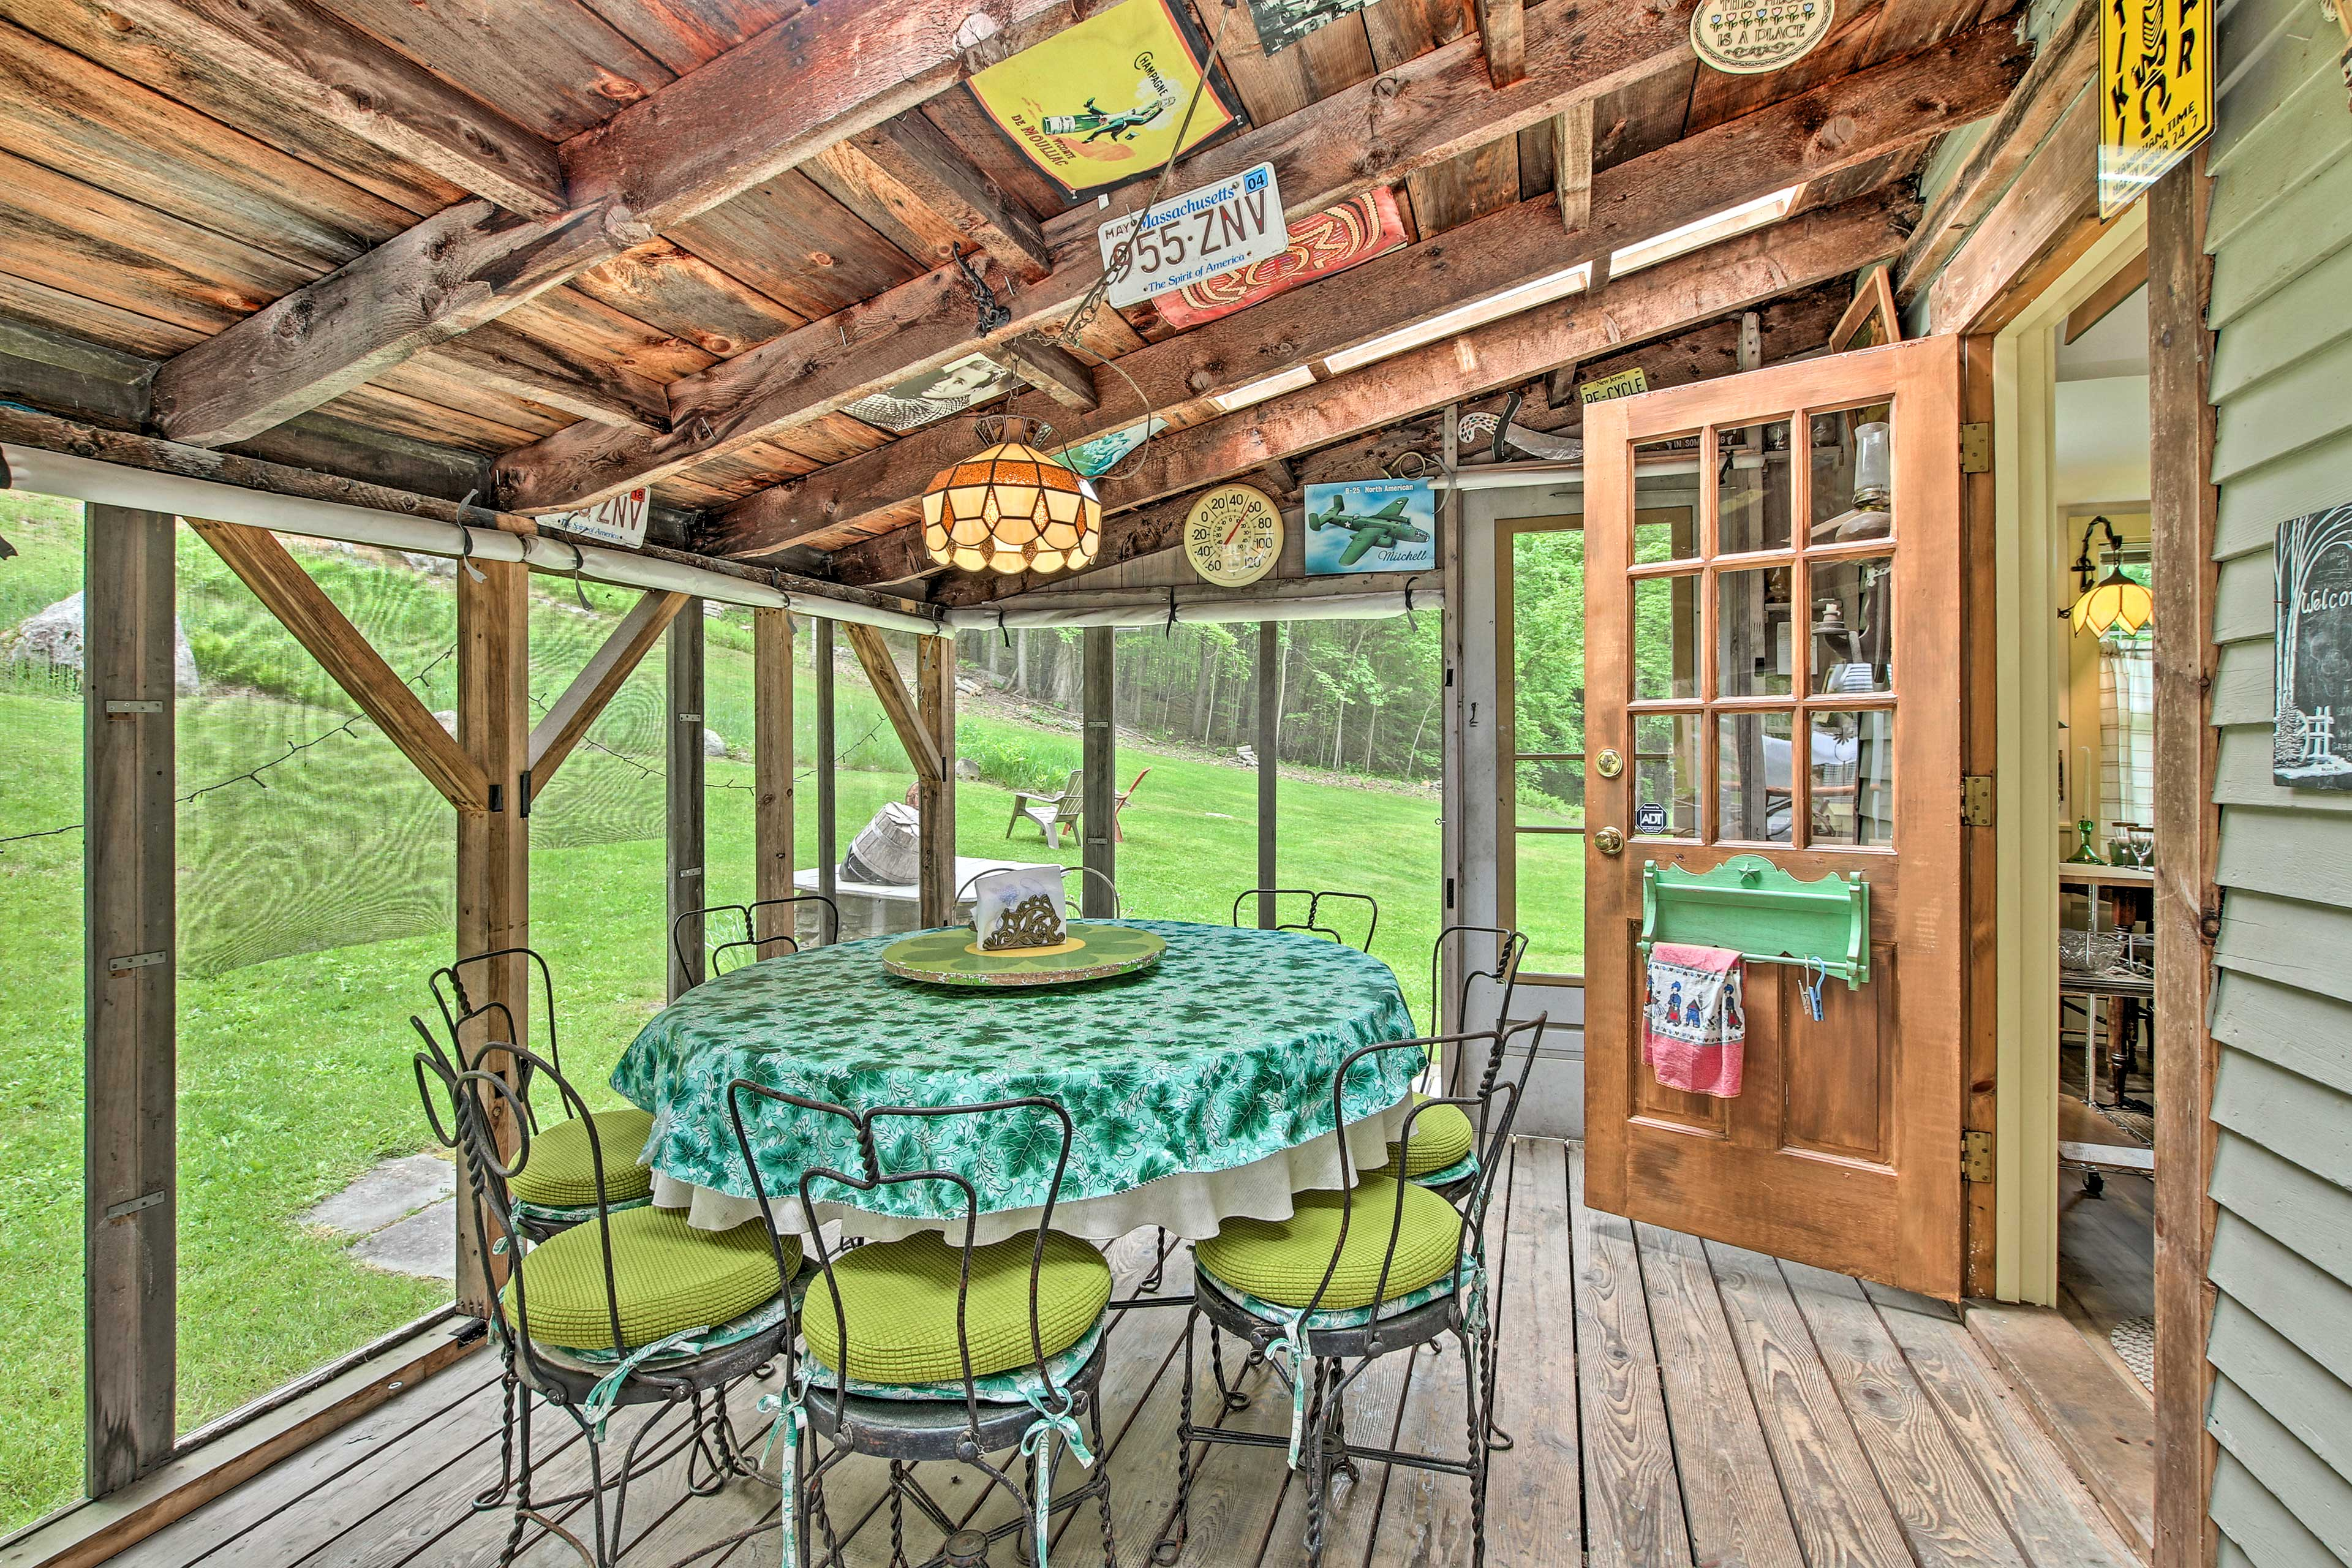 Enjoy a peaceful Northfield visit when you book this vacation rental.